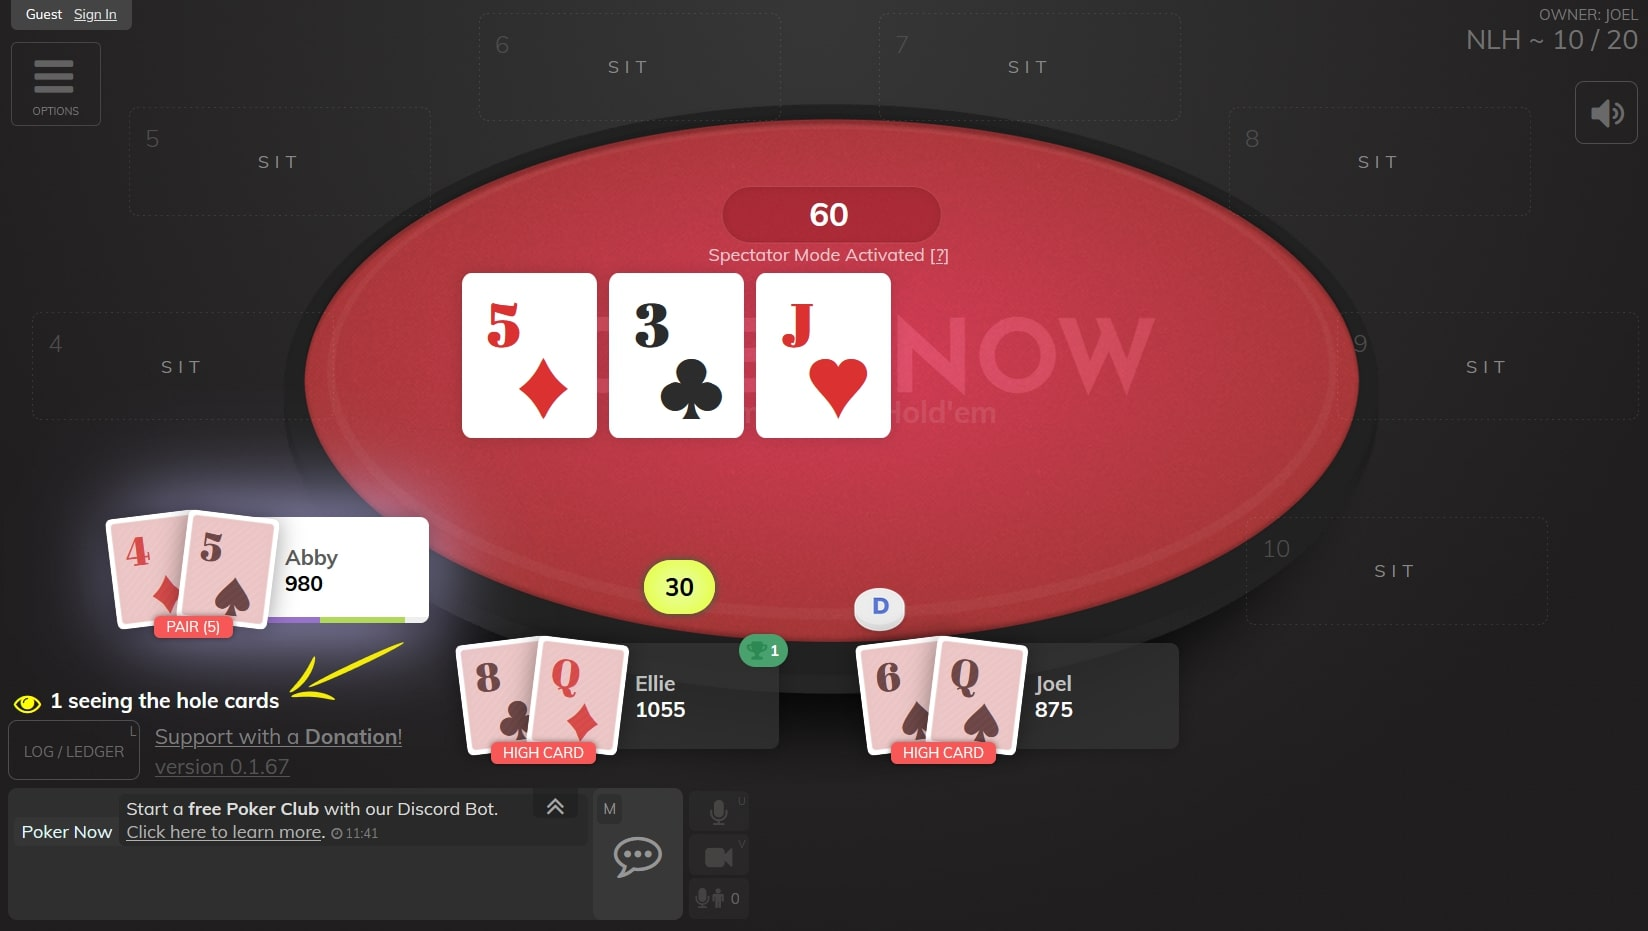 Poker now table with spectator mode activated and with highlight on the field that informs how many guests are seeing all the cards